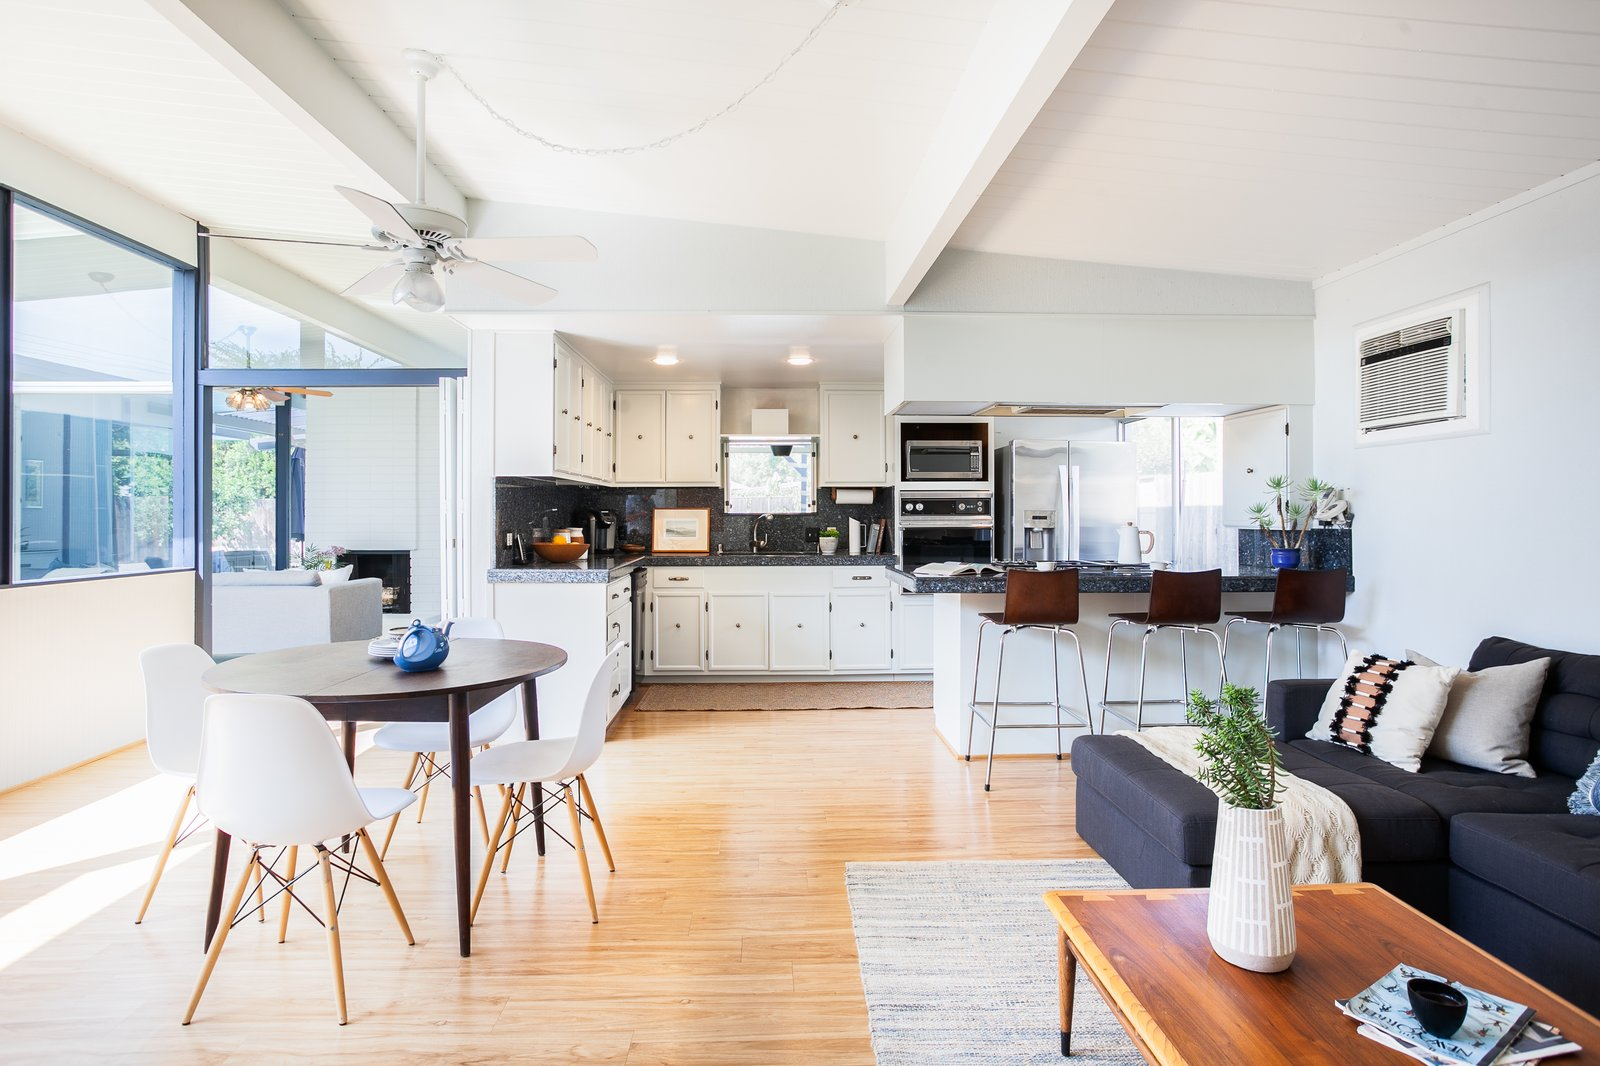 Dining, Chair, Ceiling, Recessed, Light Hardwood, Table, and Rug The kitchen is spacious, open, and bright, overlooking a more casual eating-and-sitting area.    Best Dining Light Hardwood Rug Ceiling Table Chair Photos from Grab This Orange County Eichler For $1M